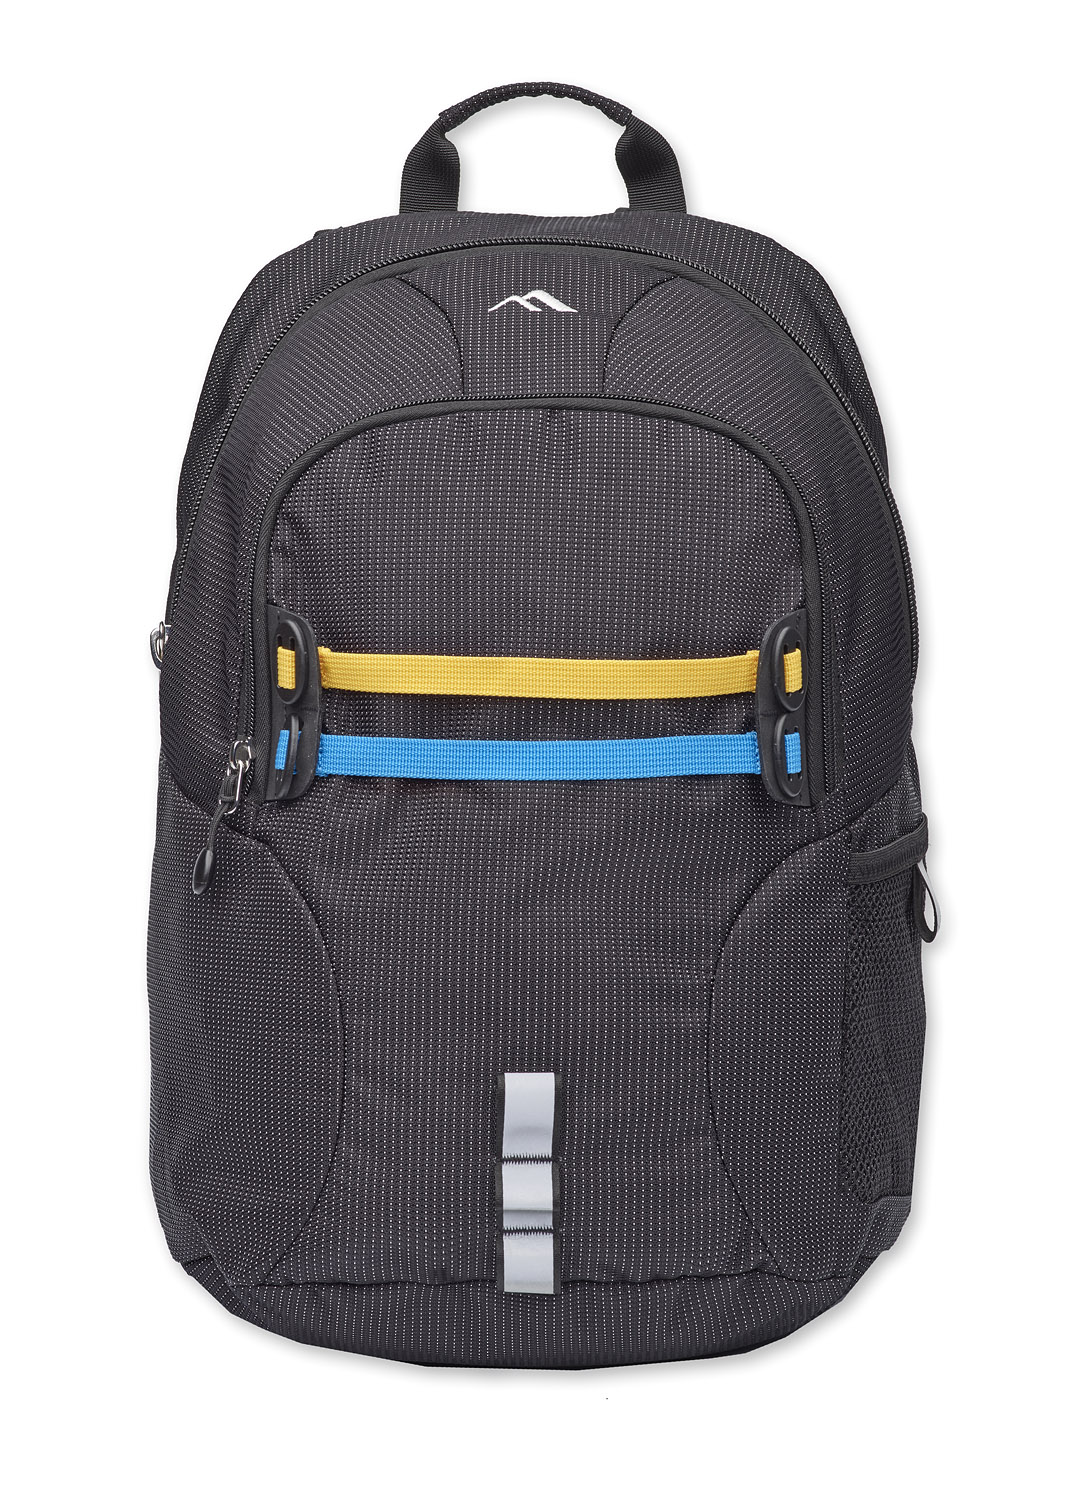 2712 Tred Alpha BackPack